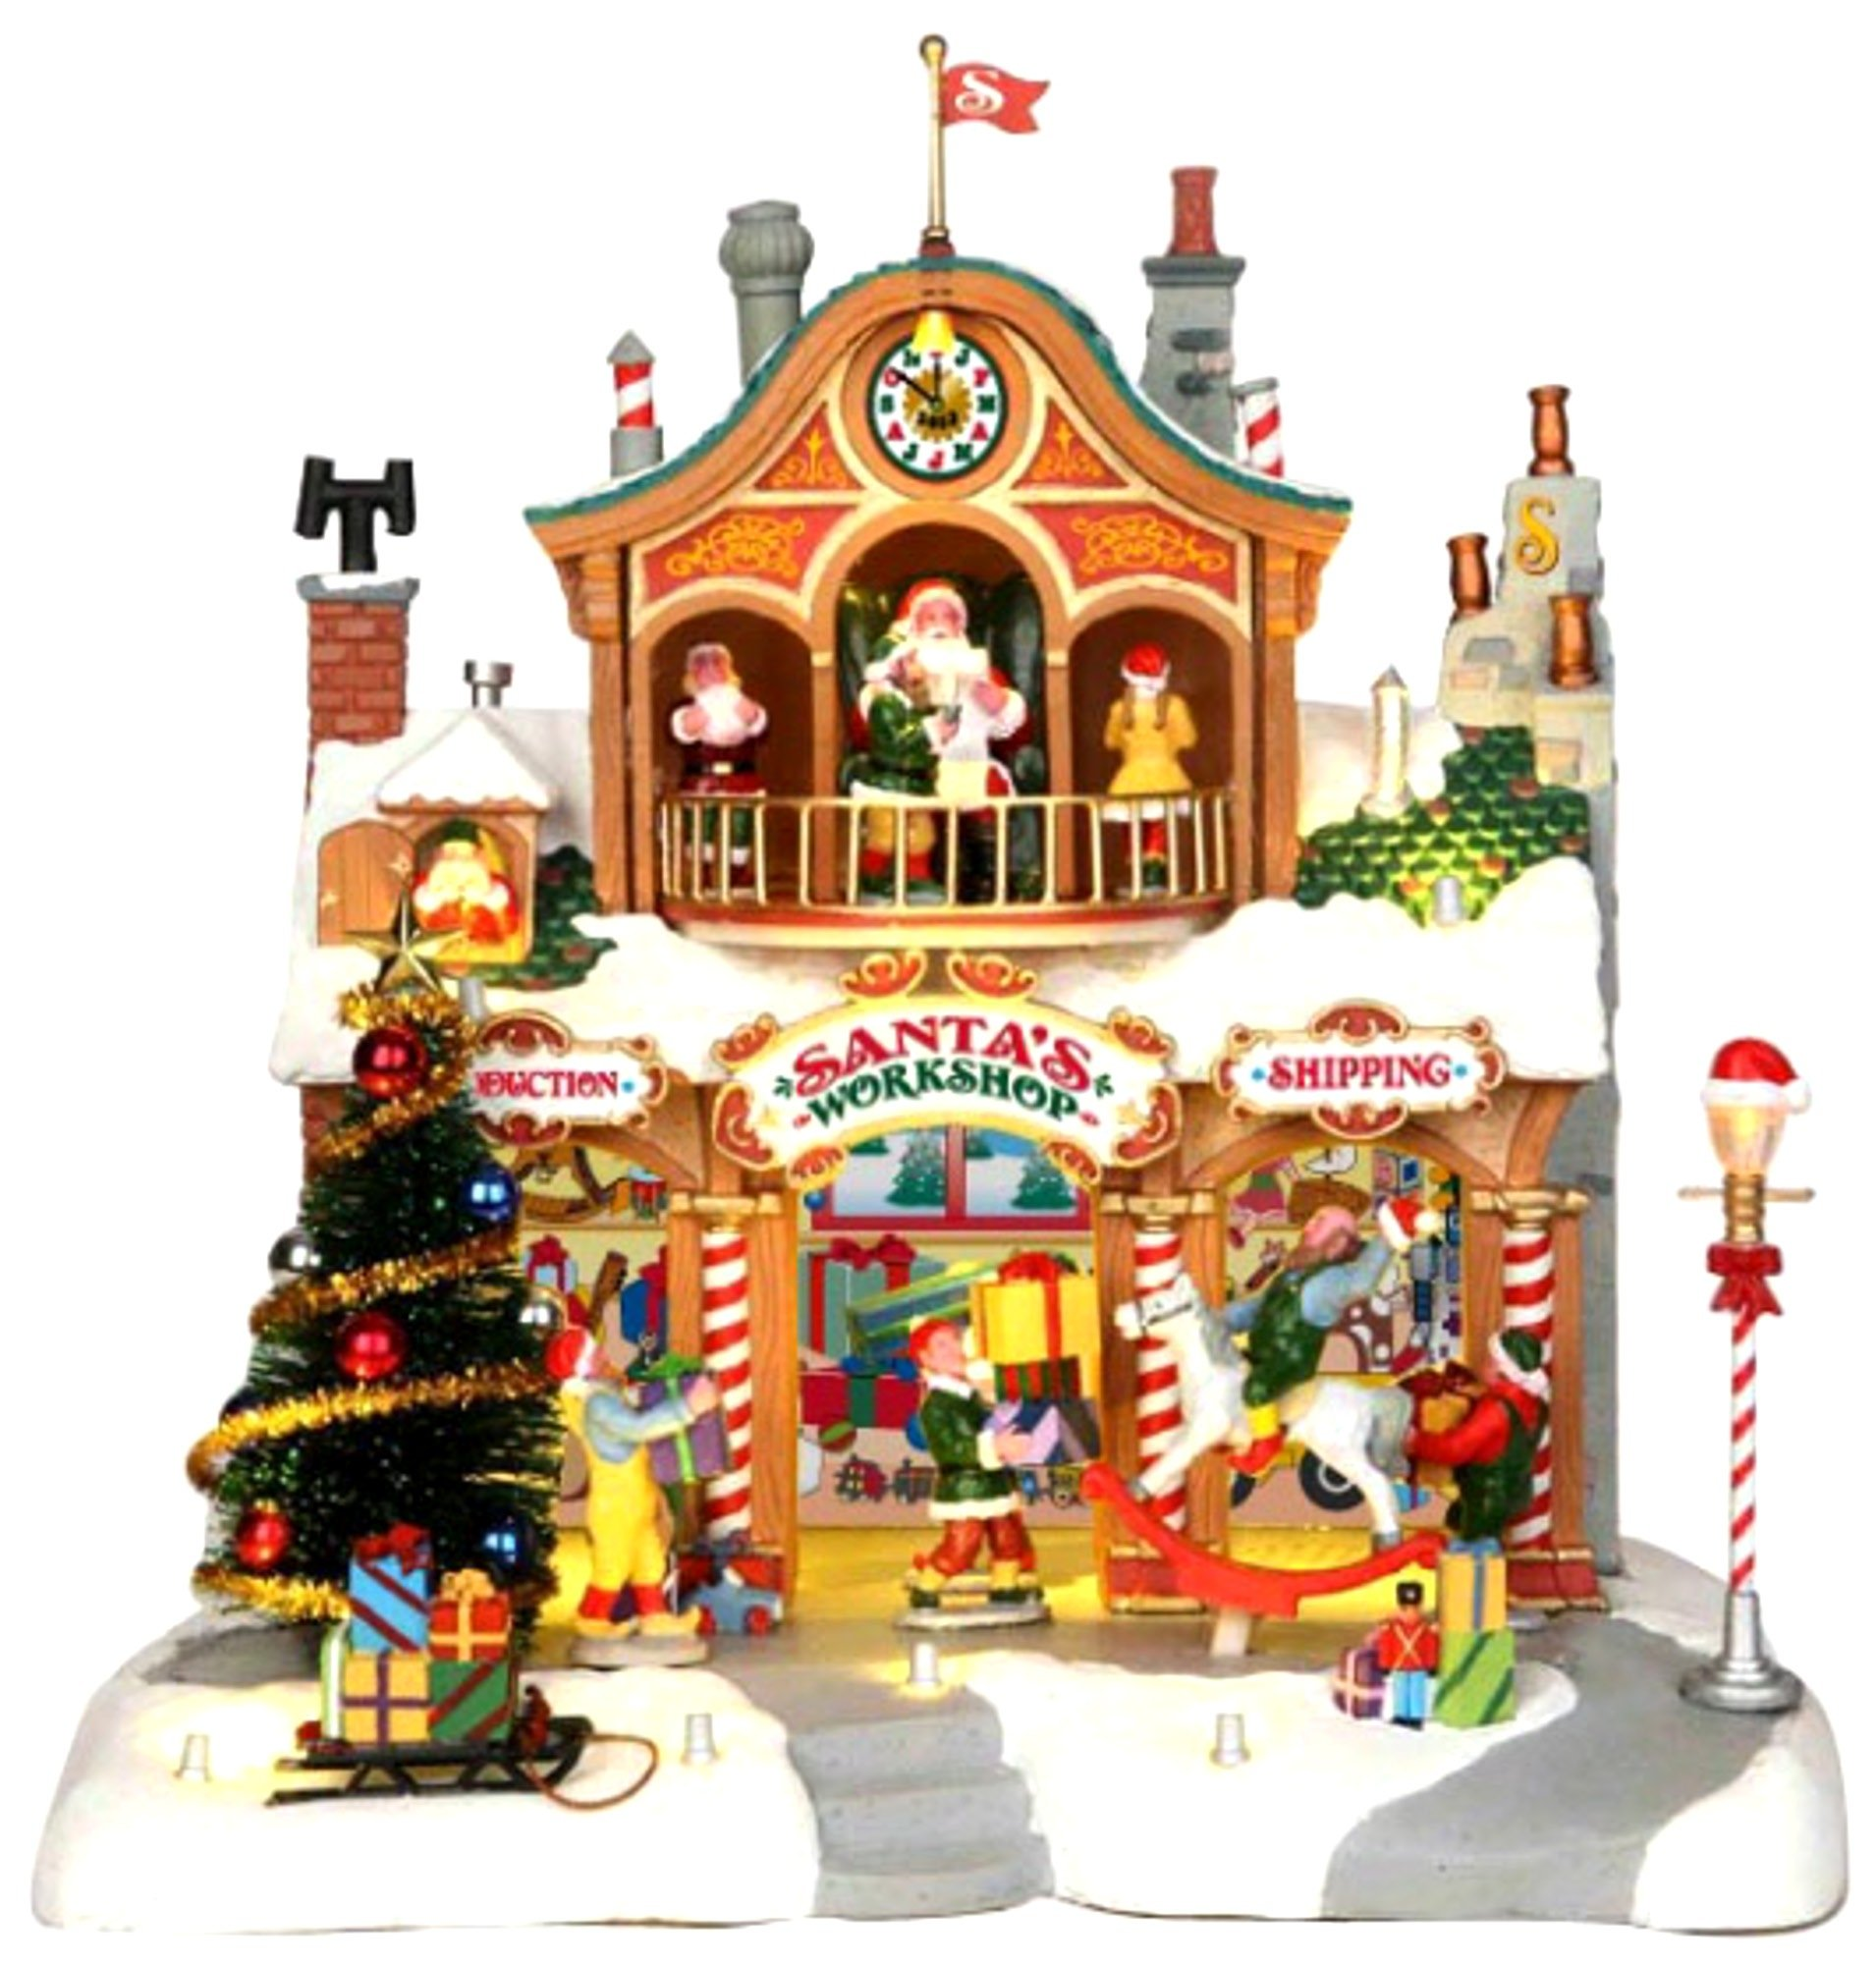 Lemax Christmas Village Santa's Workshop by Lemax by Lemax